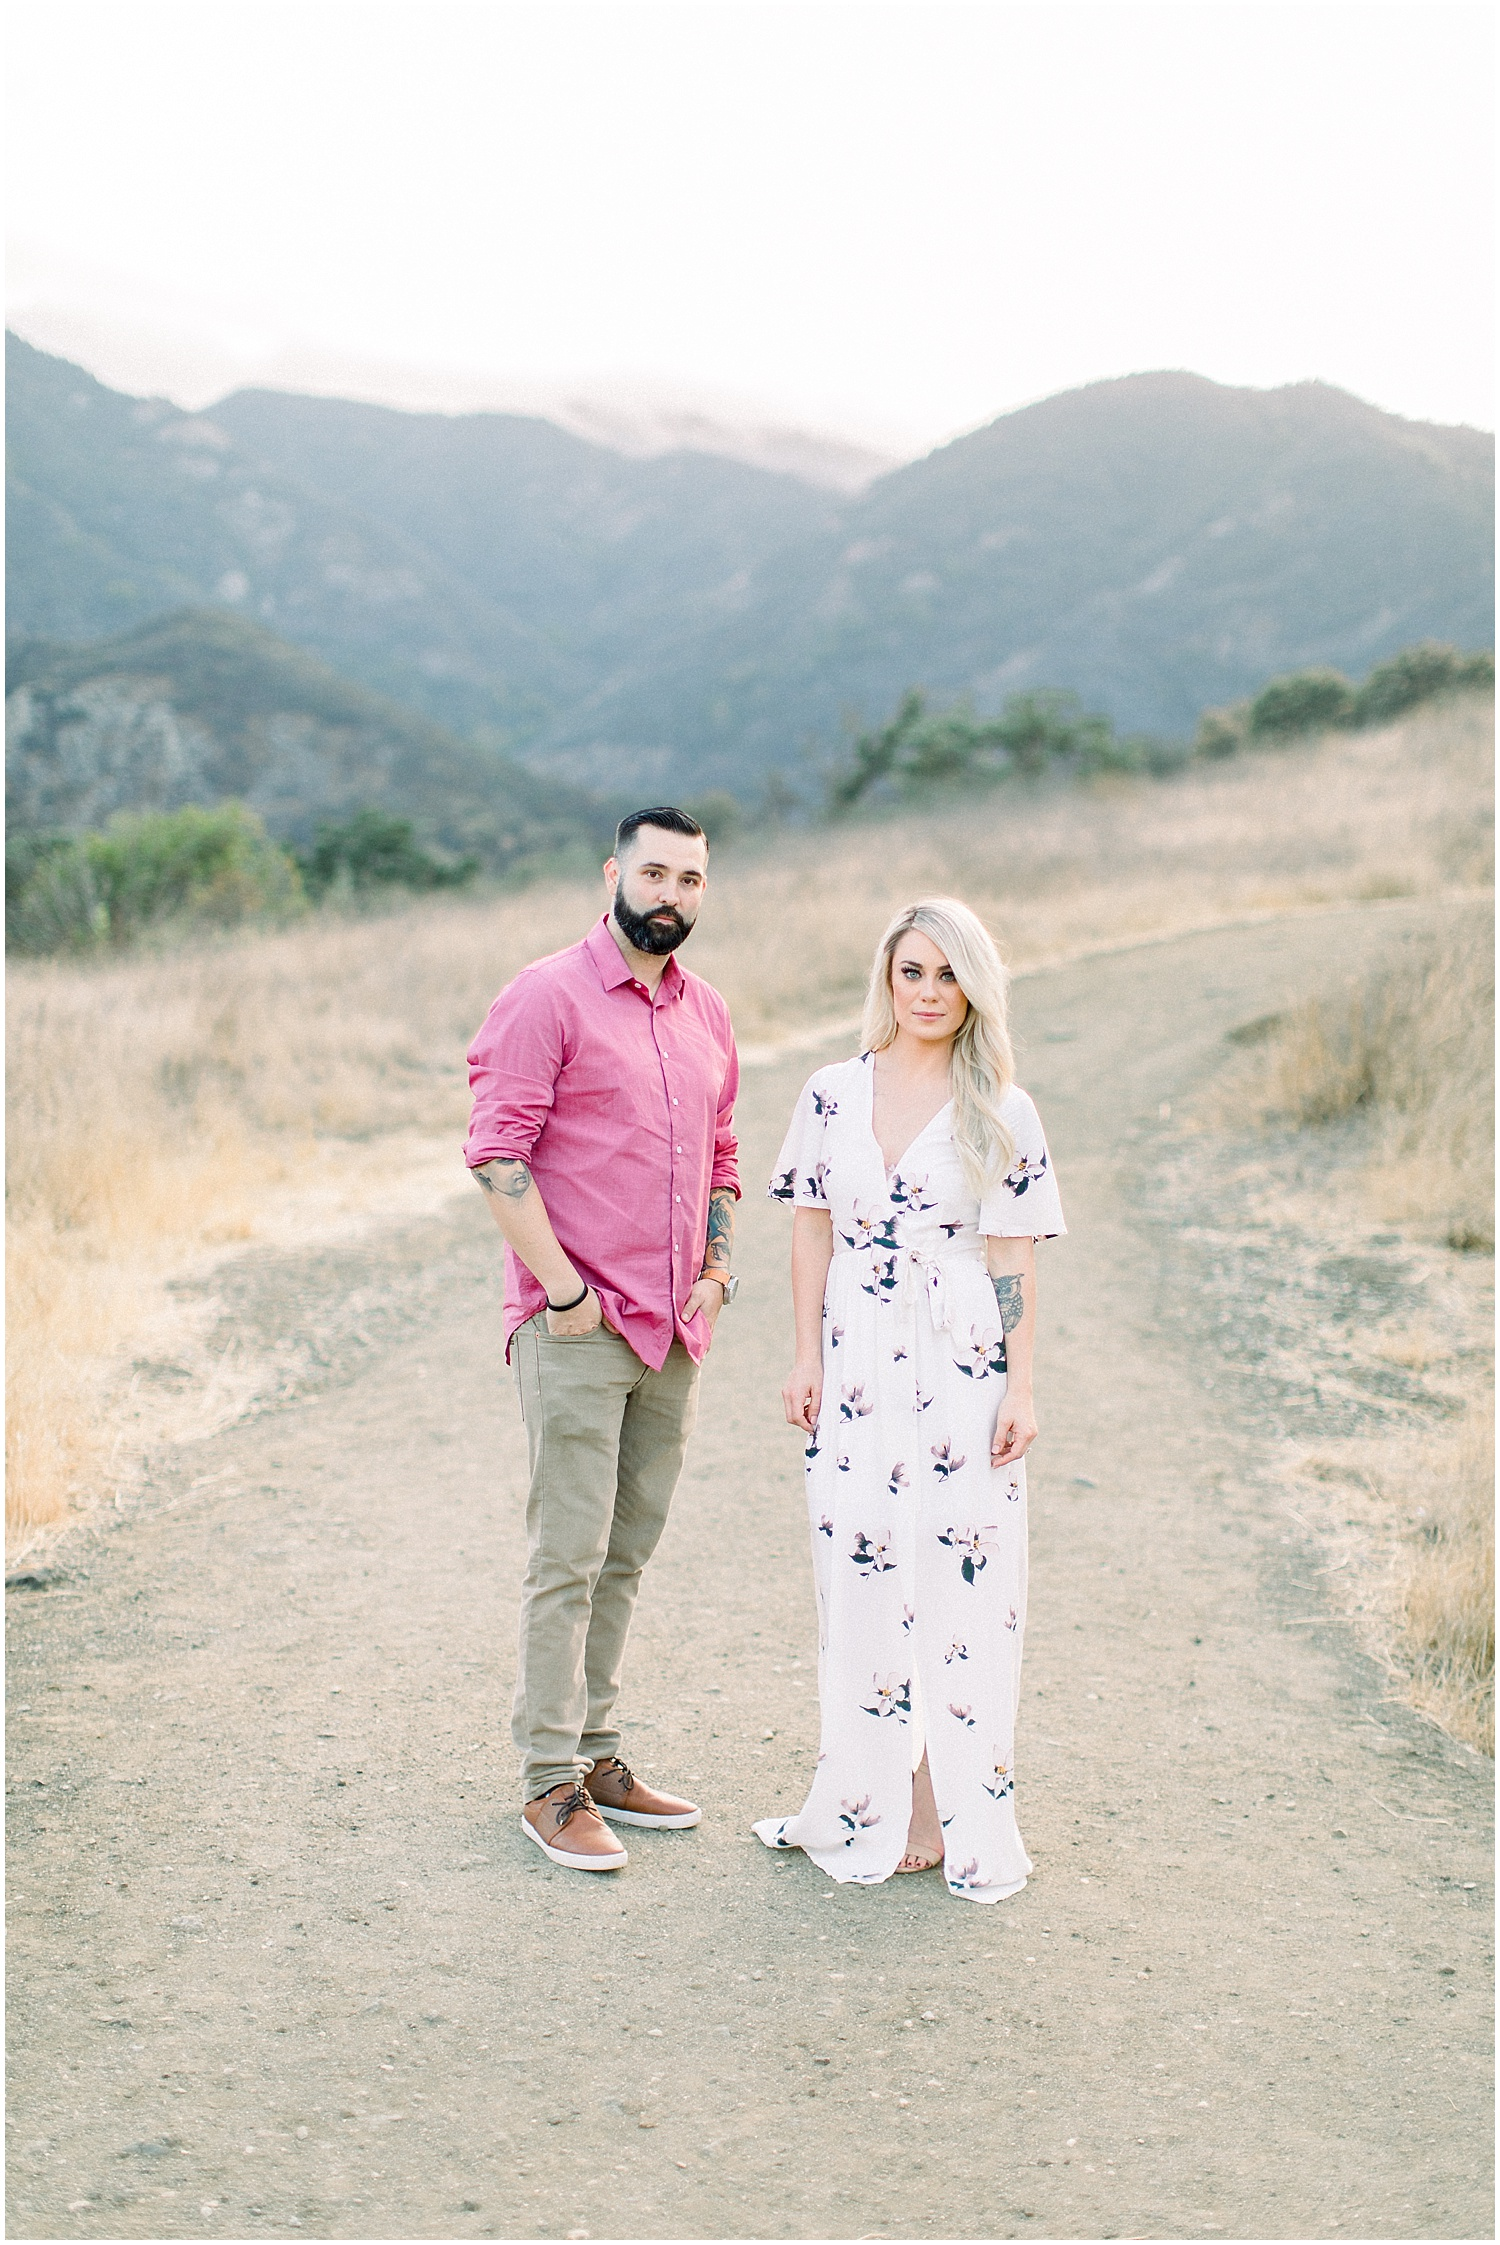 Santa Barbara Engagement | Kestrel Park Wedding | San Diego Wedding Photographer | Palm Springs Wedding Photographer | Joshua Tree Elopment_0047.jpg